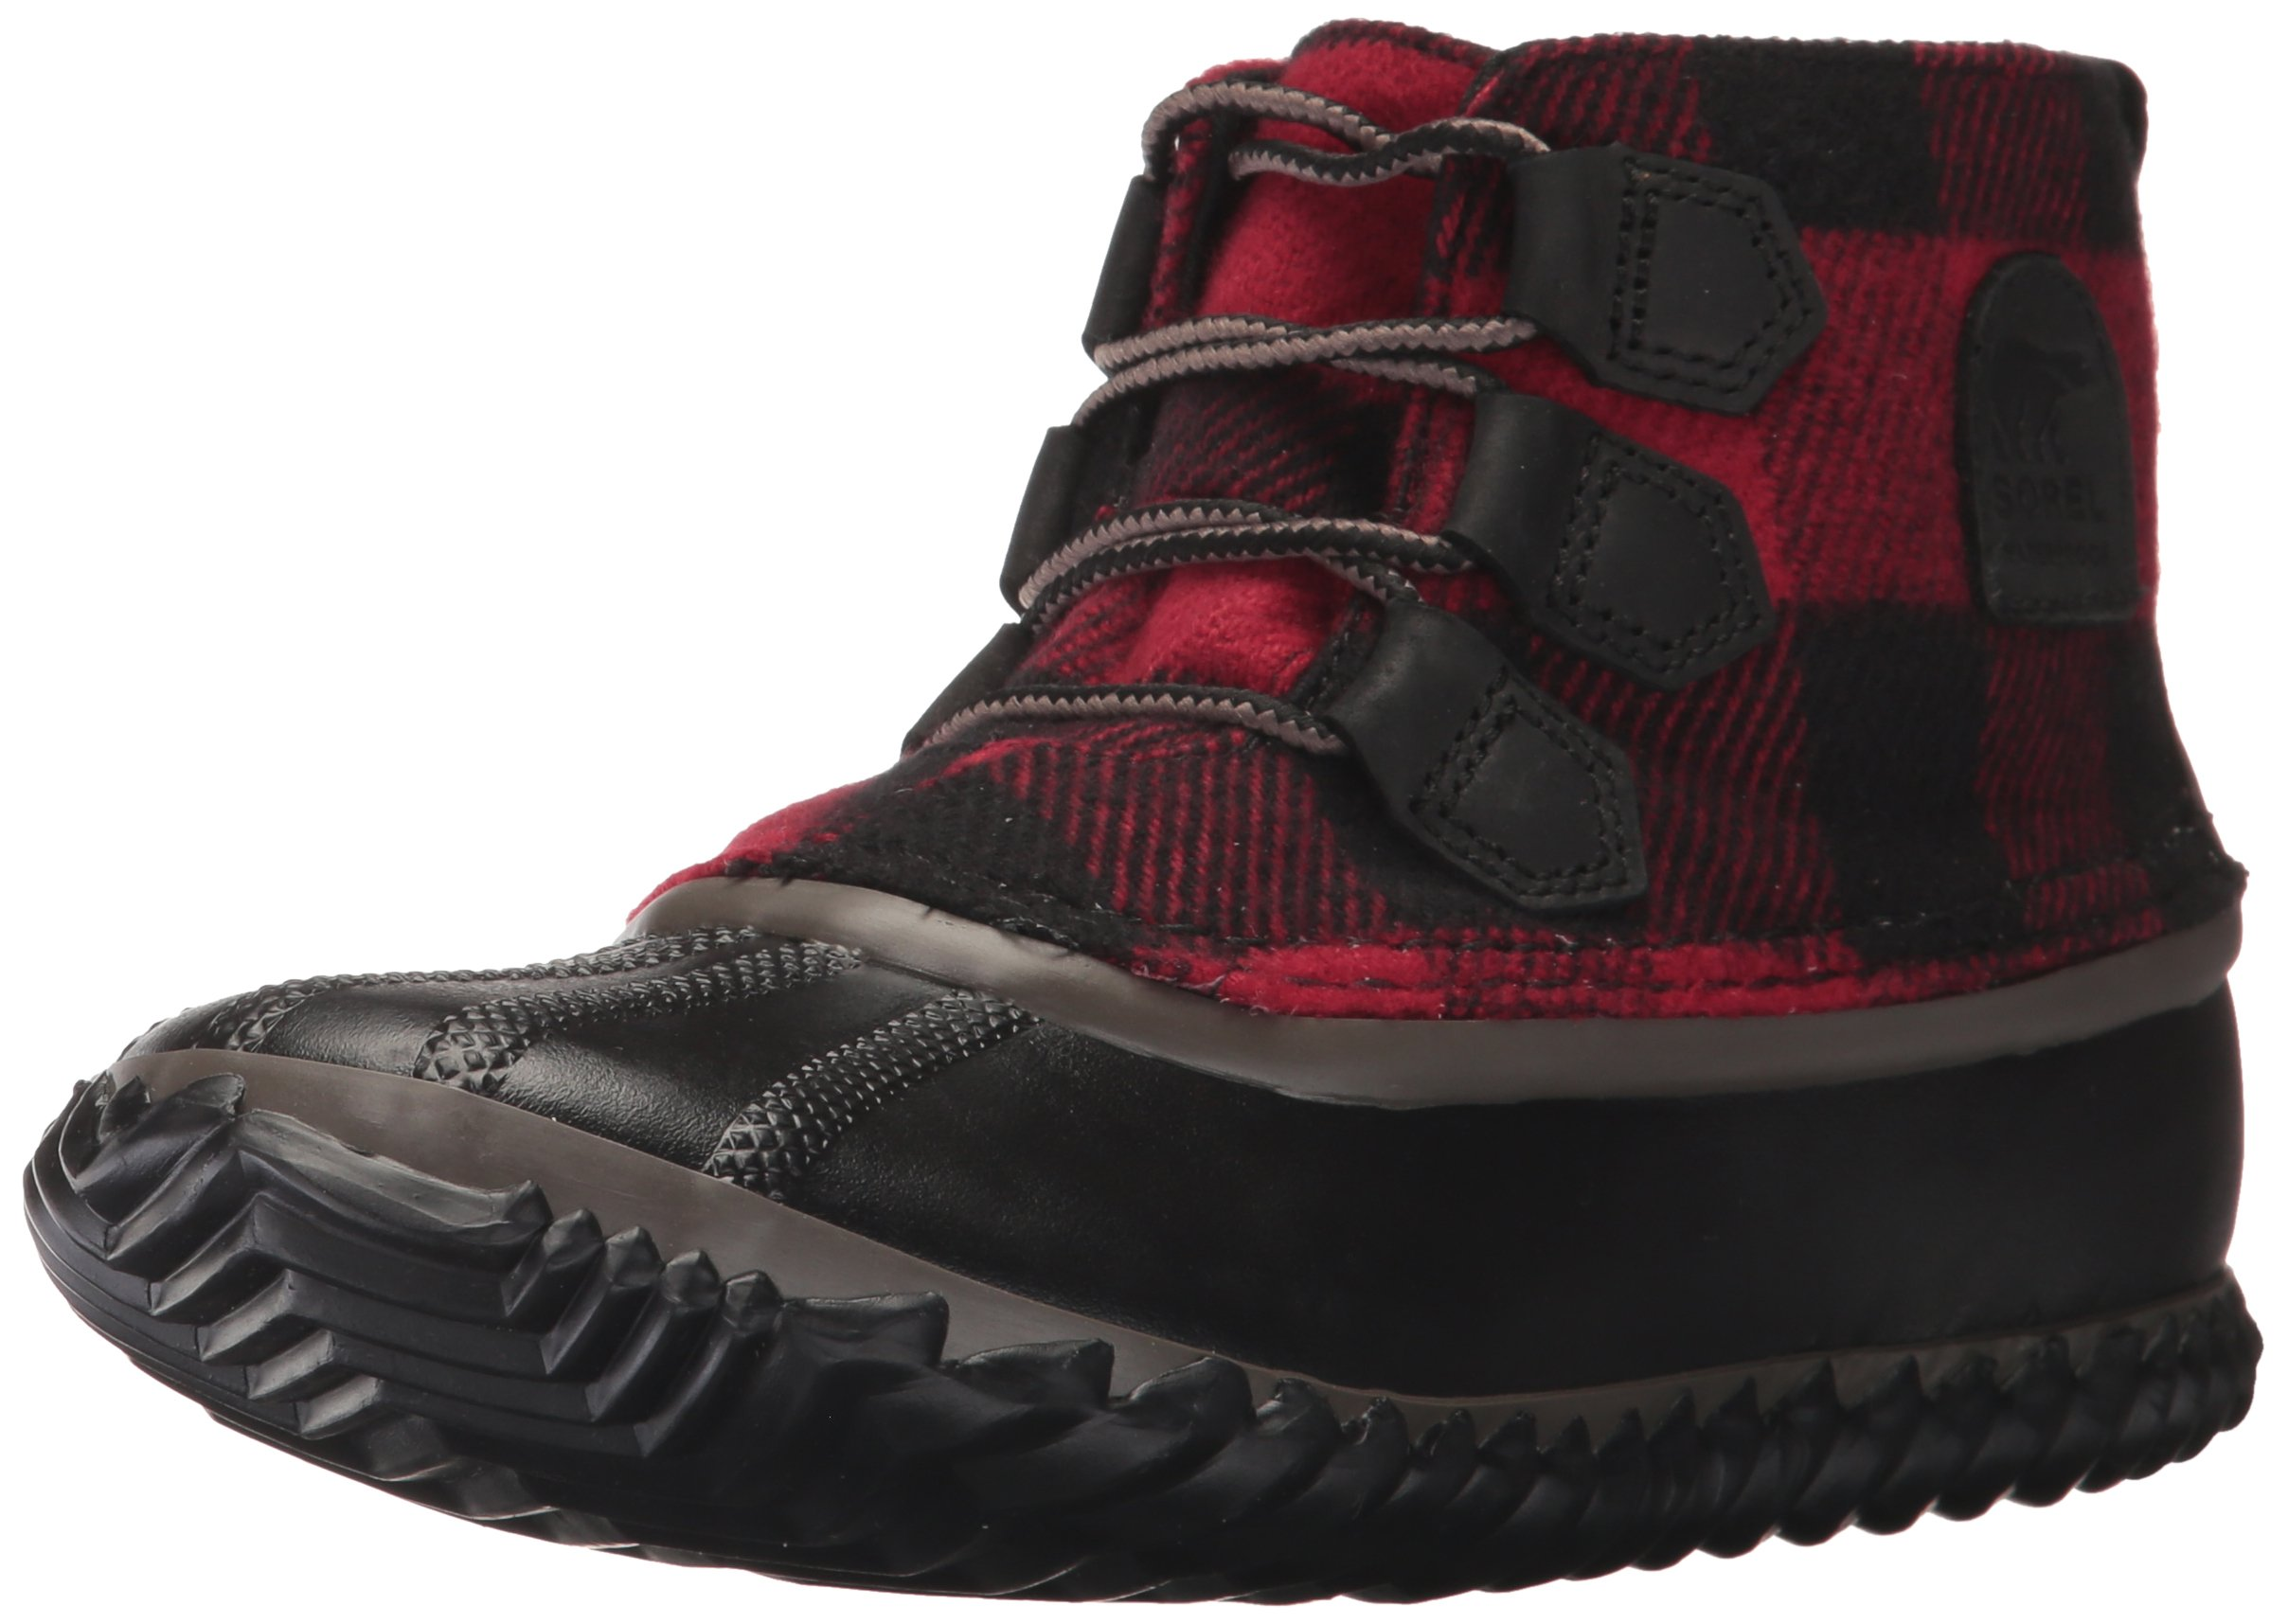 SOREL Women's Out N About Snow Boot, Mud Black, 12 B US